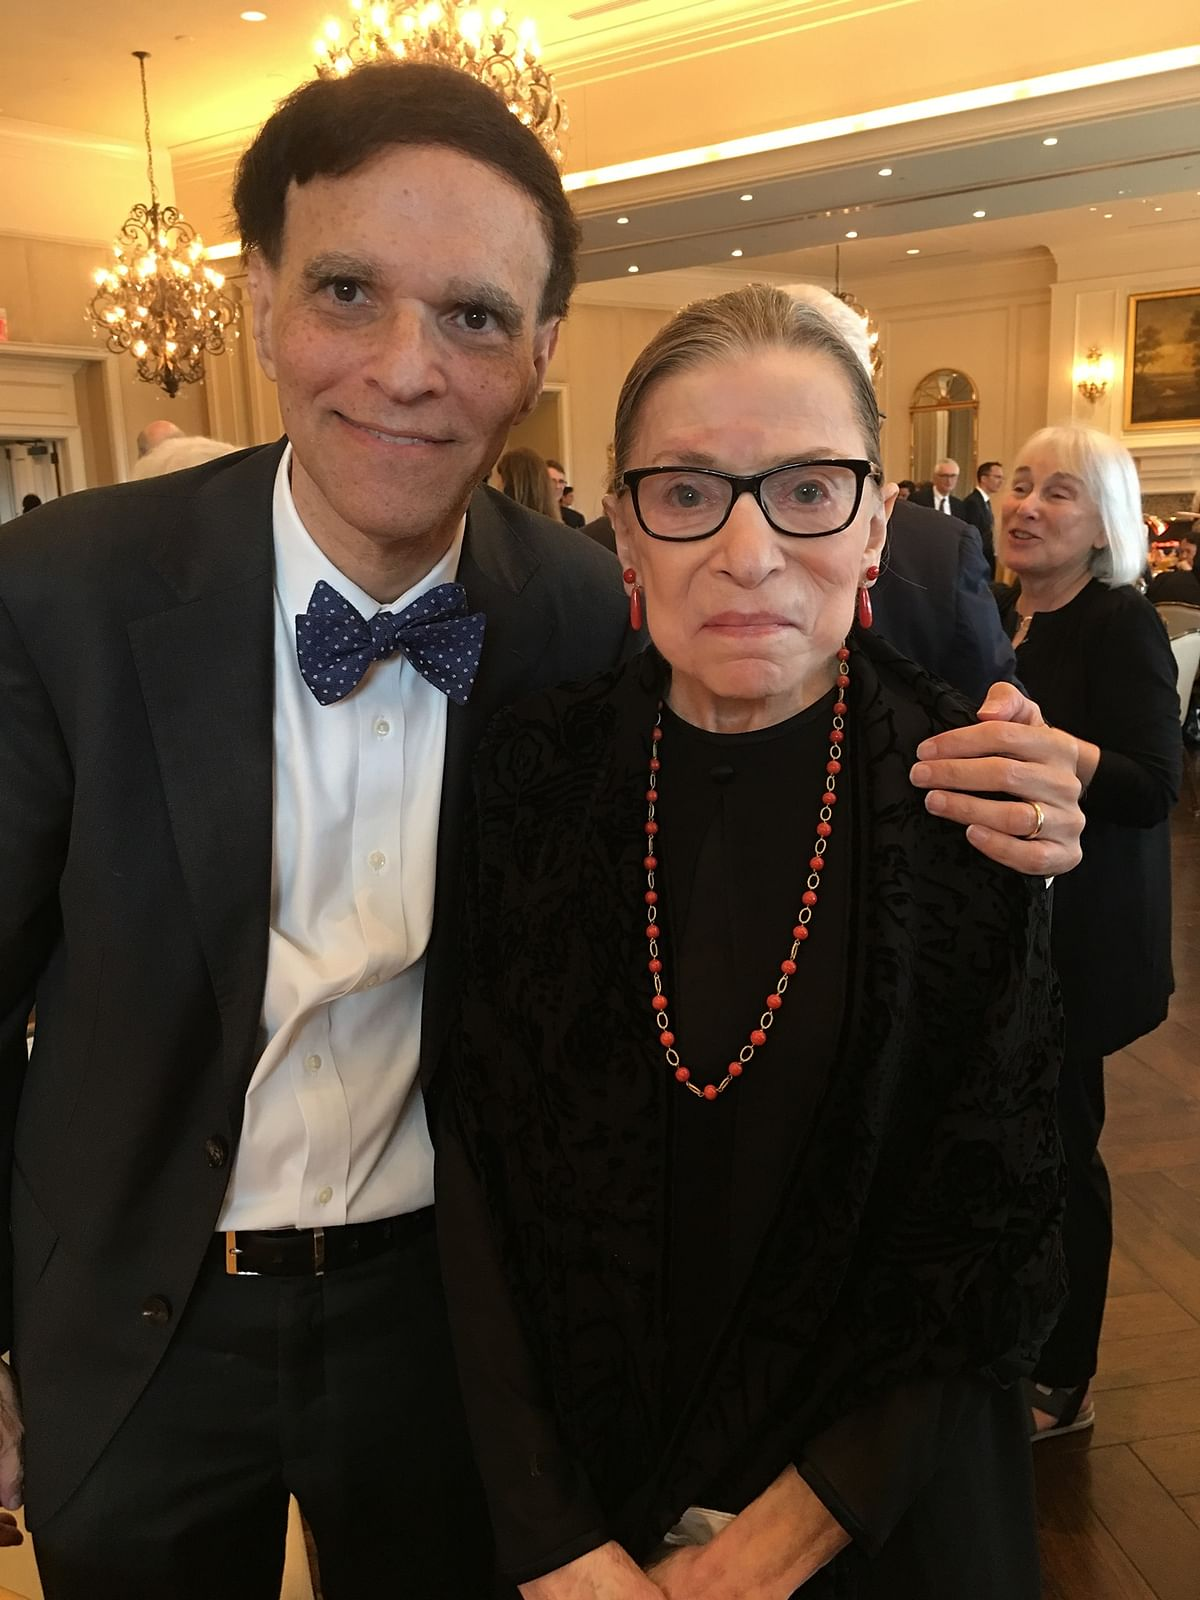 Remembering My Mentor and Friend, Ruth Bader Ginsberg